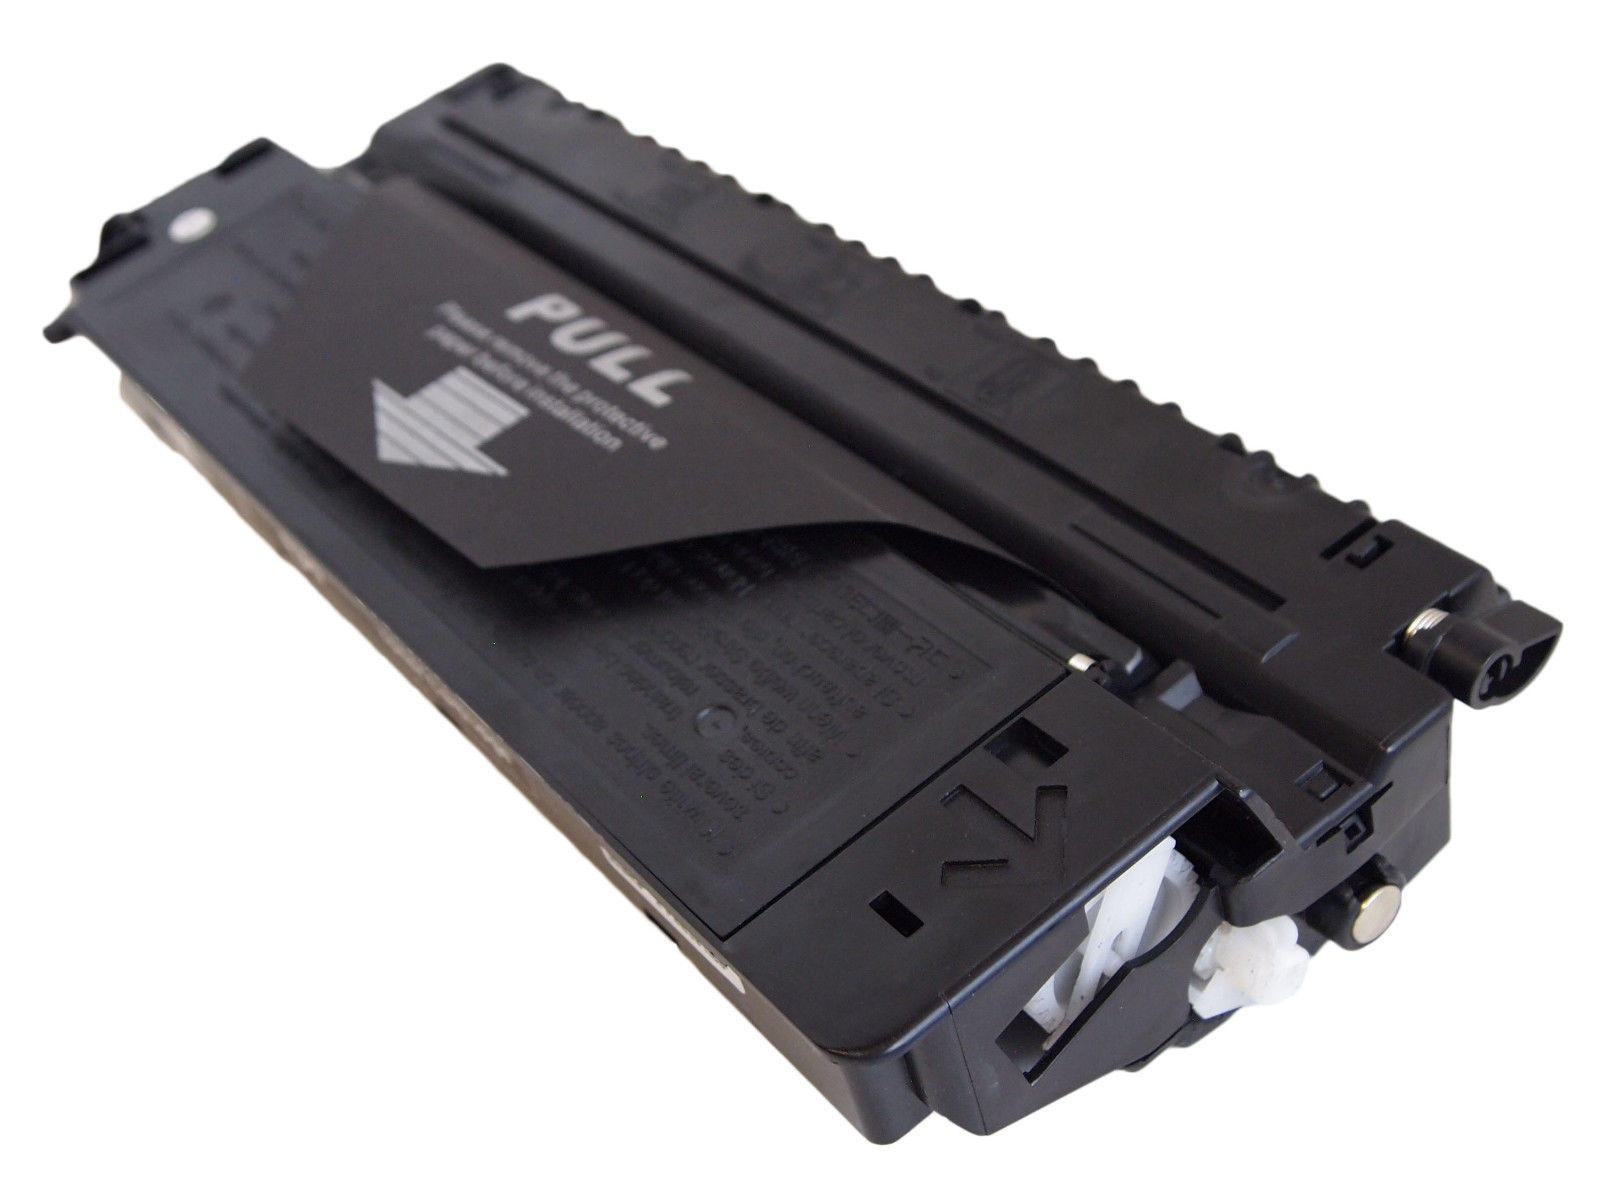 Compatible toner cartridges for Canon printers